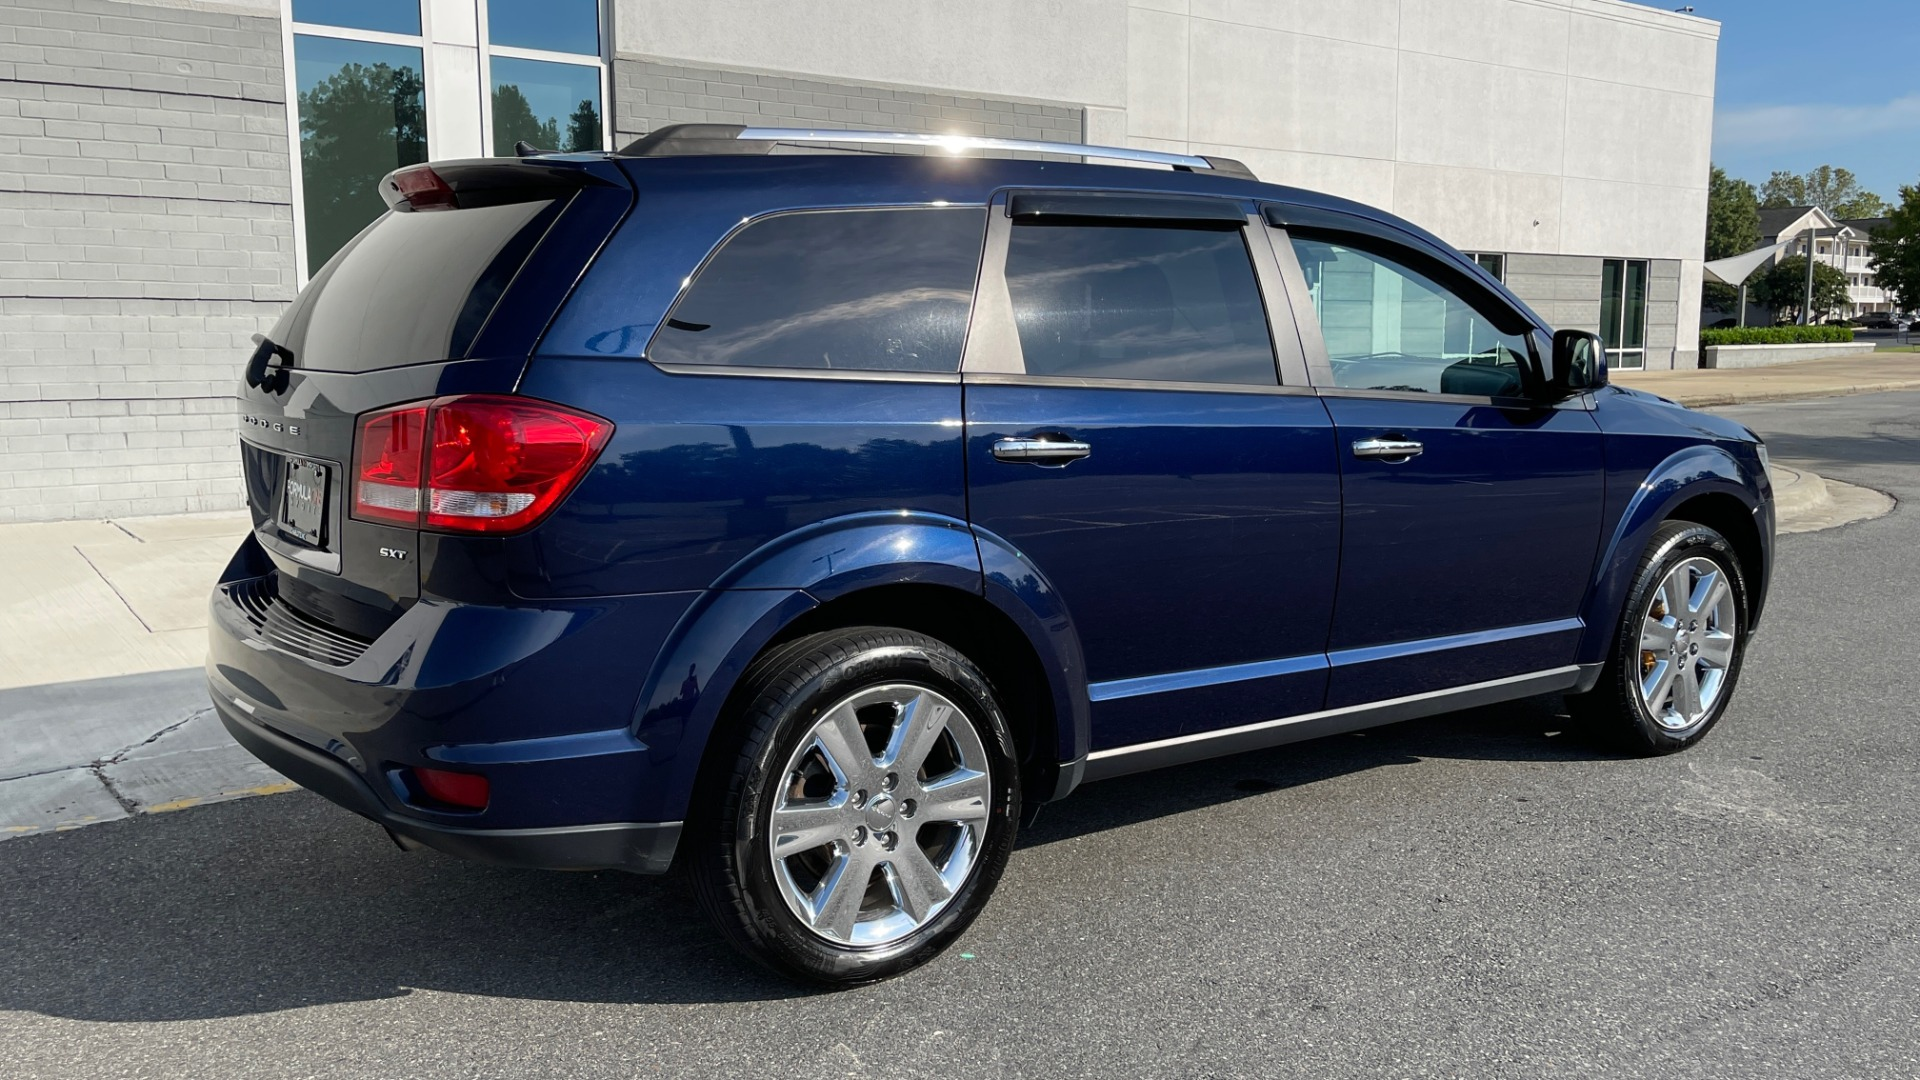 Used 2017 Dodge JOURNEY SXT PREMIUM / 2.4L / 4-SPD AUTO / KEYLESS-GO / 3-ROW / 19IN WHEELS for sale $15,995 at Formula Imports in Charlotte NC 28227 8